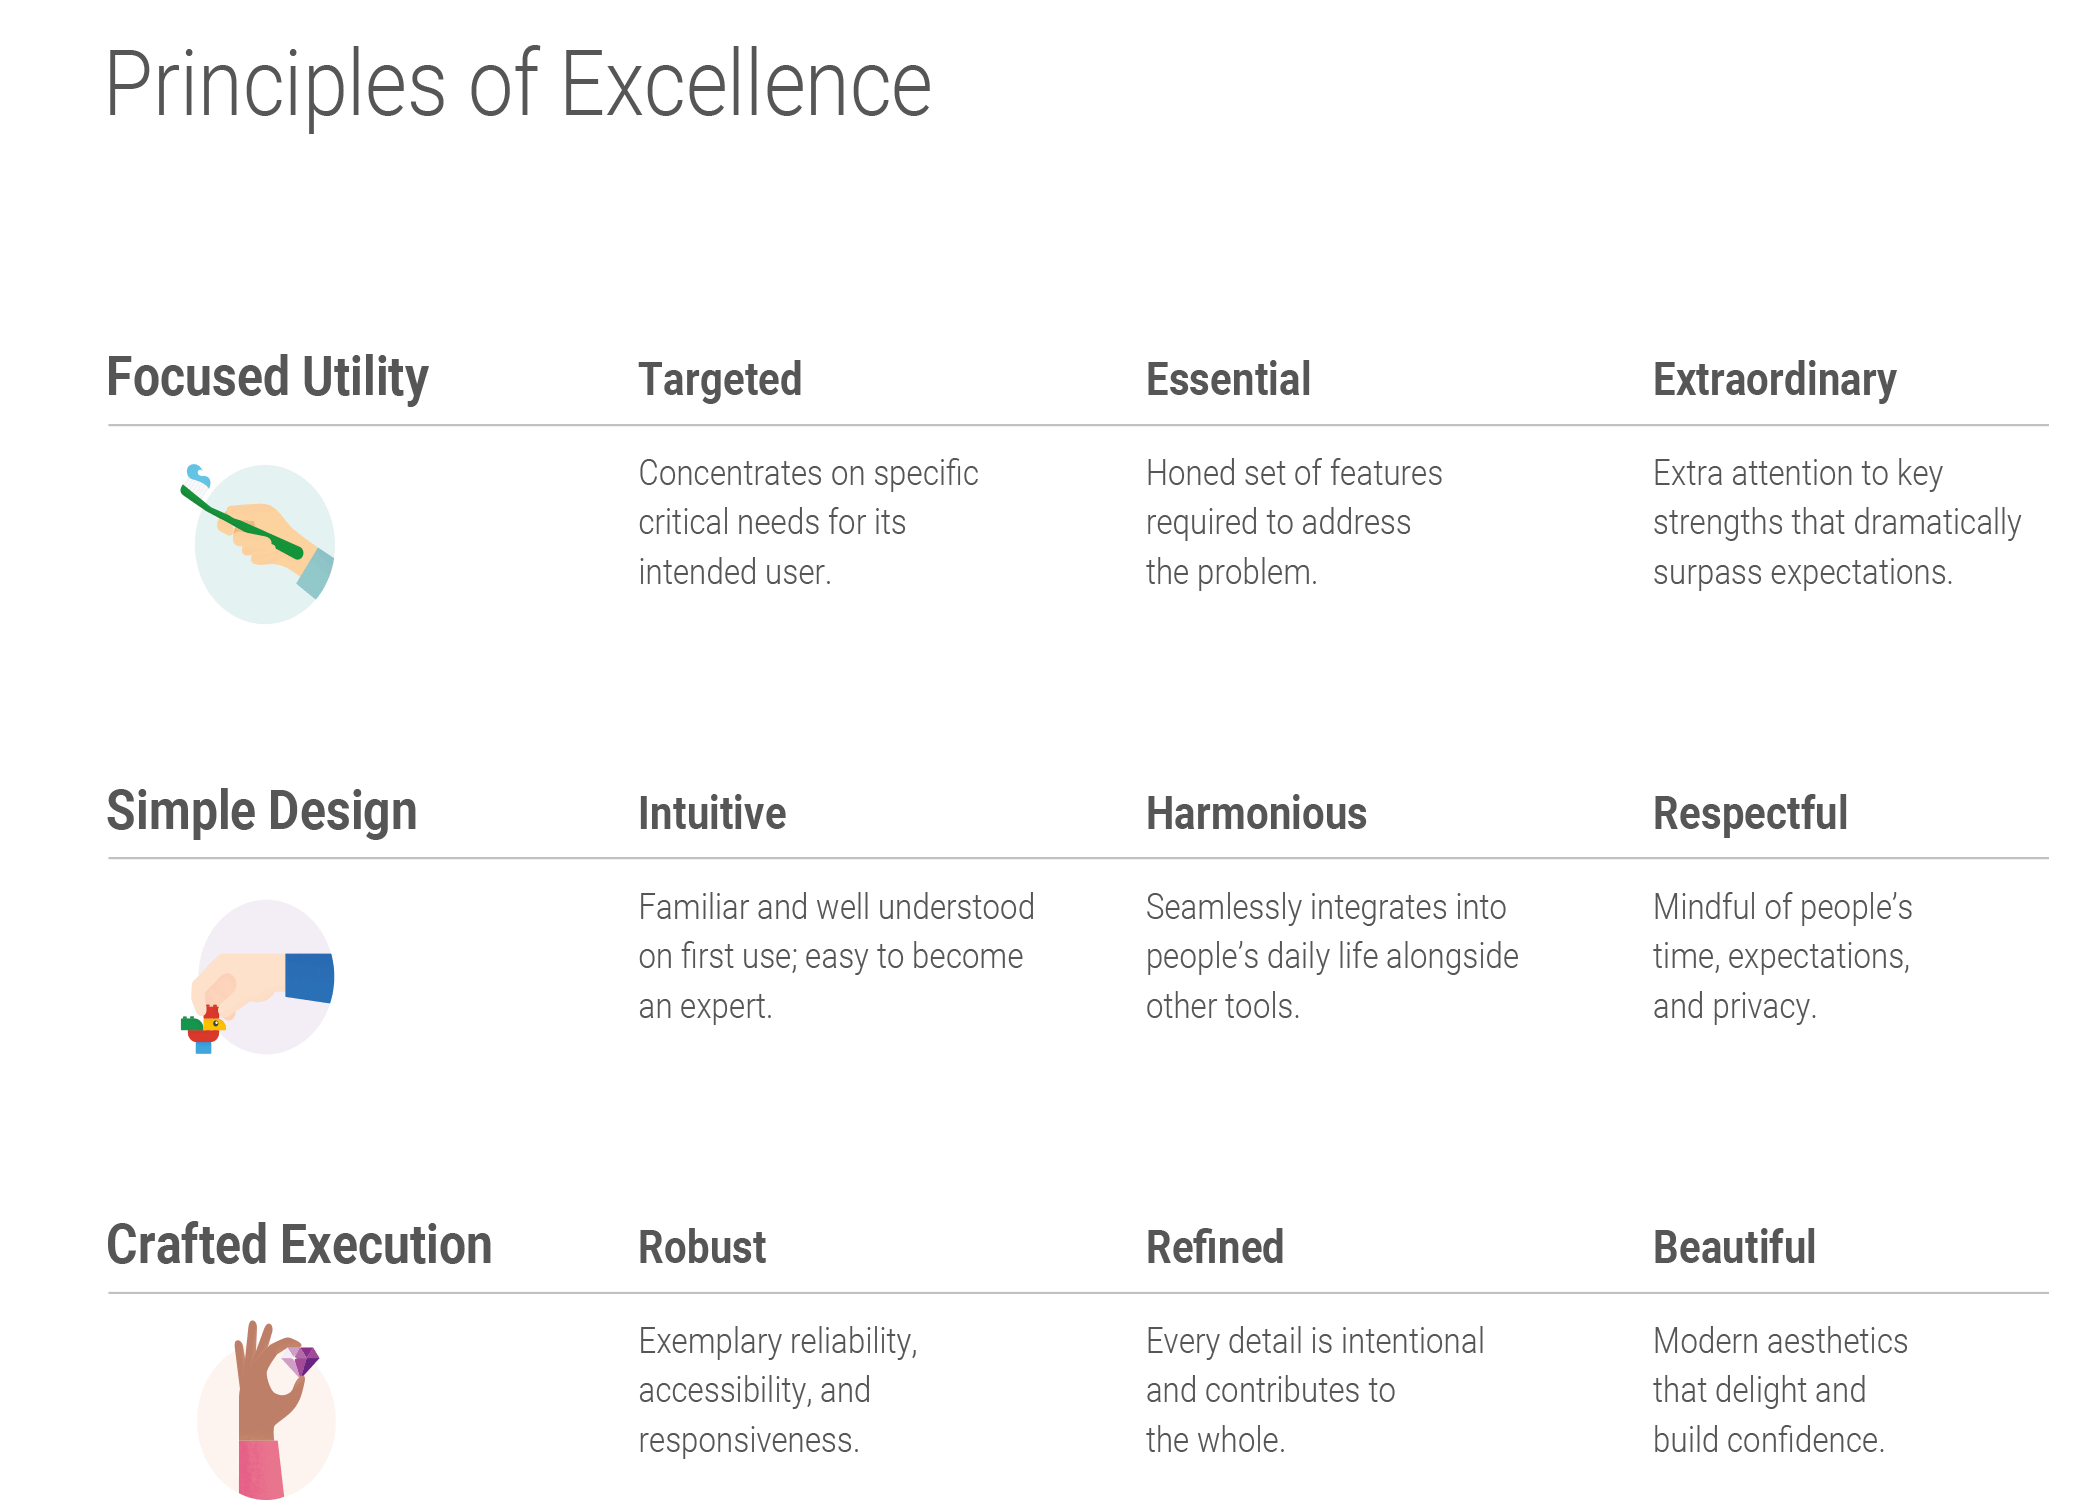 Product Excellence Principles